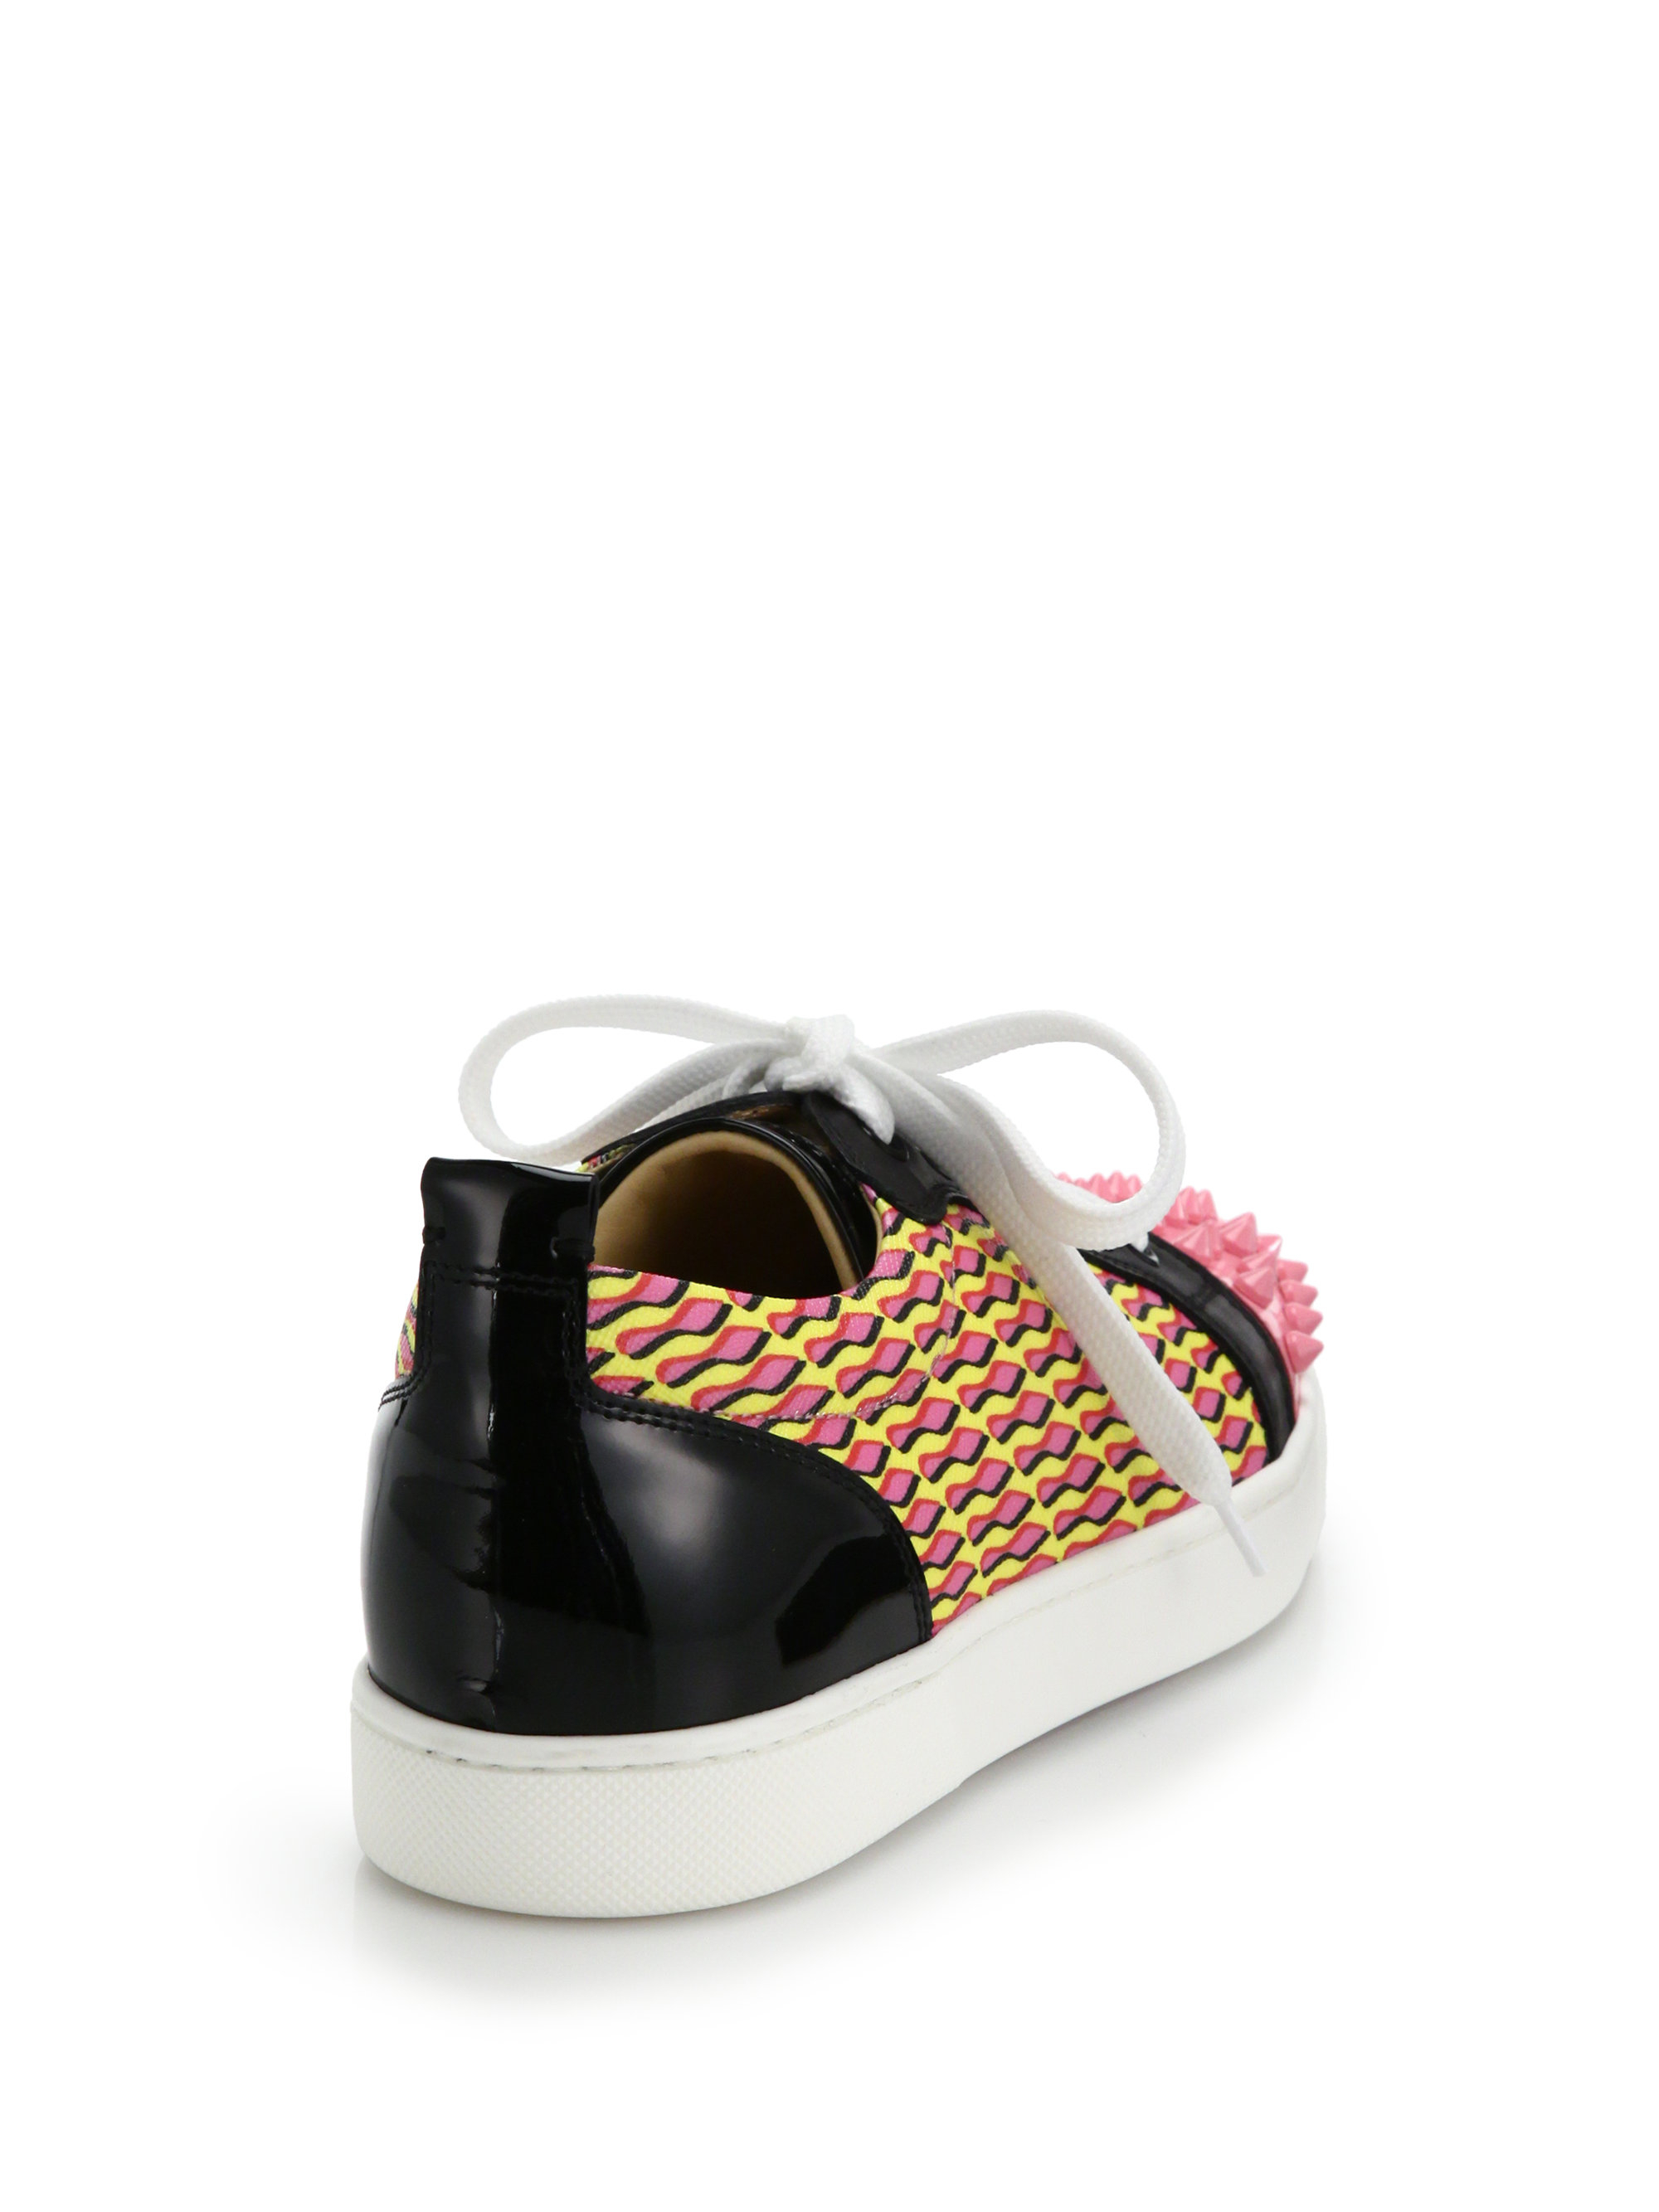 replica christian louboutin shoes - Christian louboutin Louis Jr Studded Leather & Printed Canvas ...